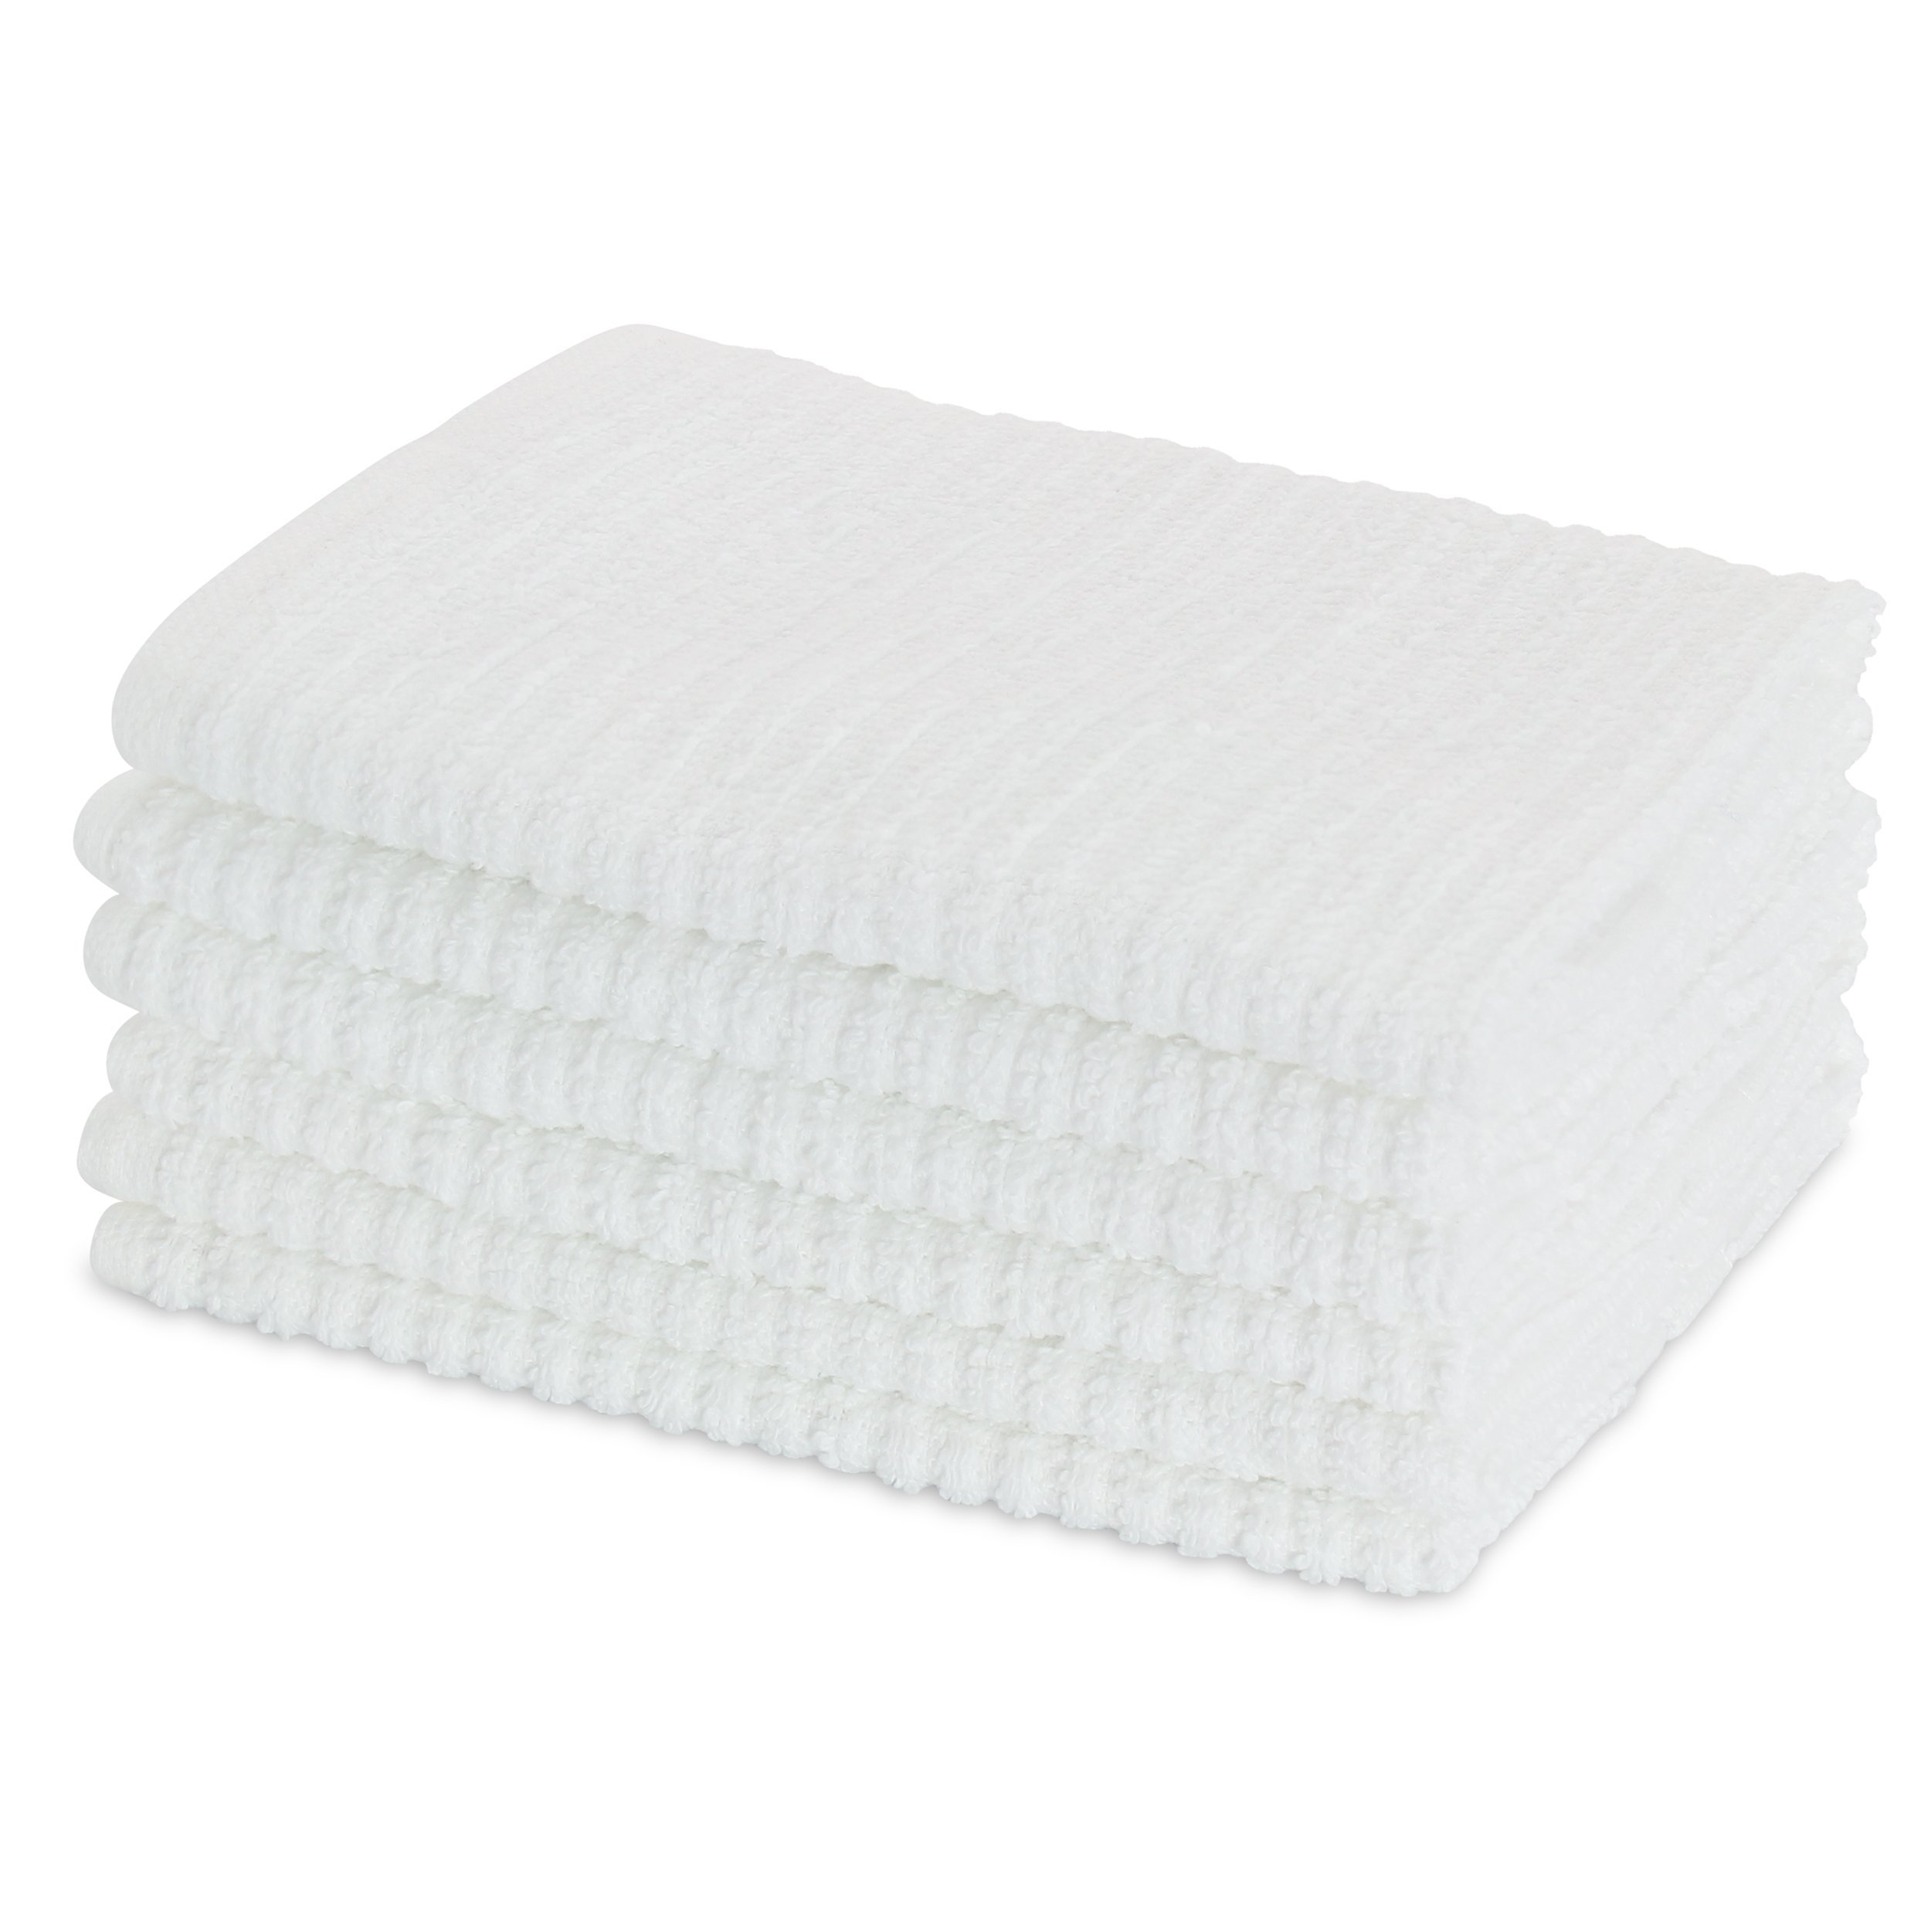 HomeCrate All Purpose Heavy Weight Bar Mop Dish Cloths, Super Absorbent 100% Cotton - 12'' x 12'', Set of 6, White